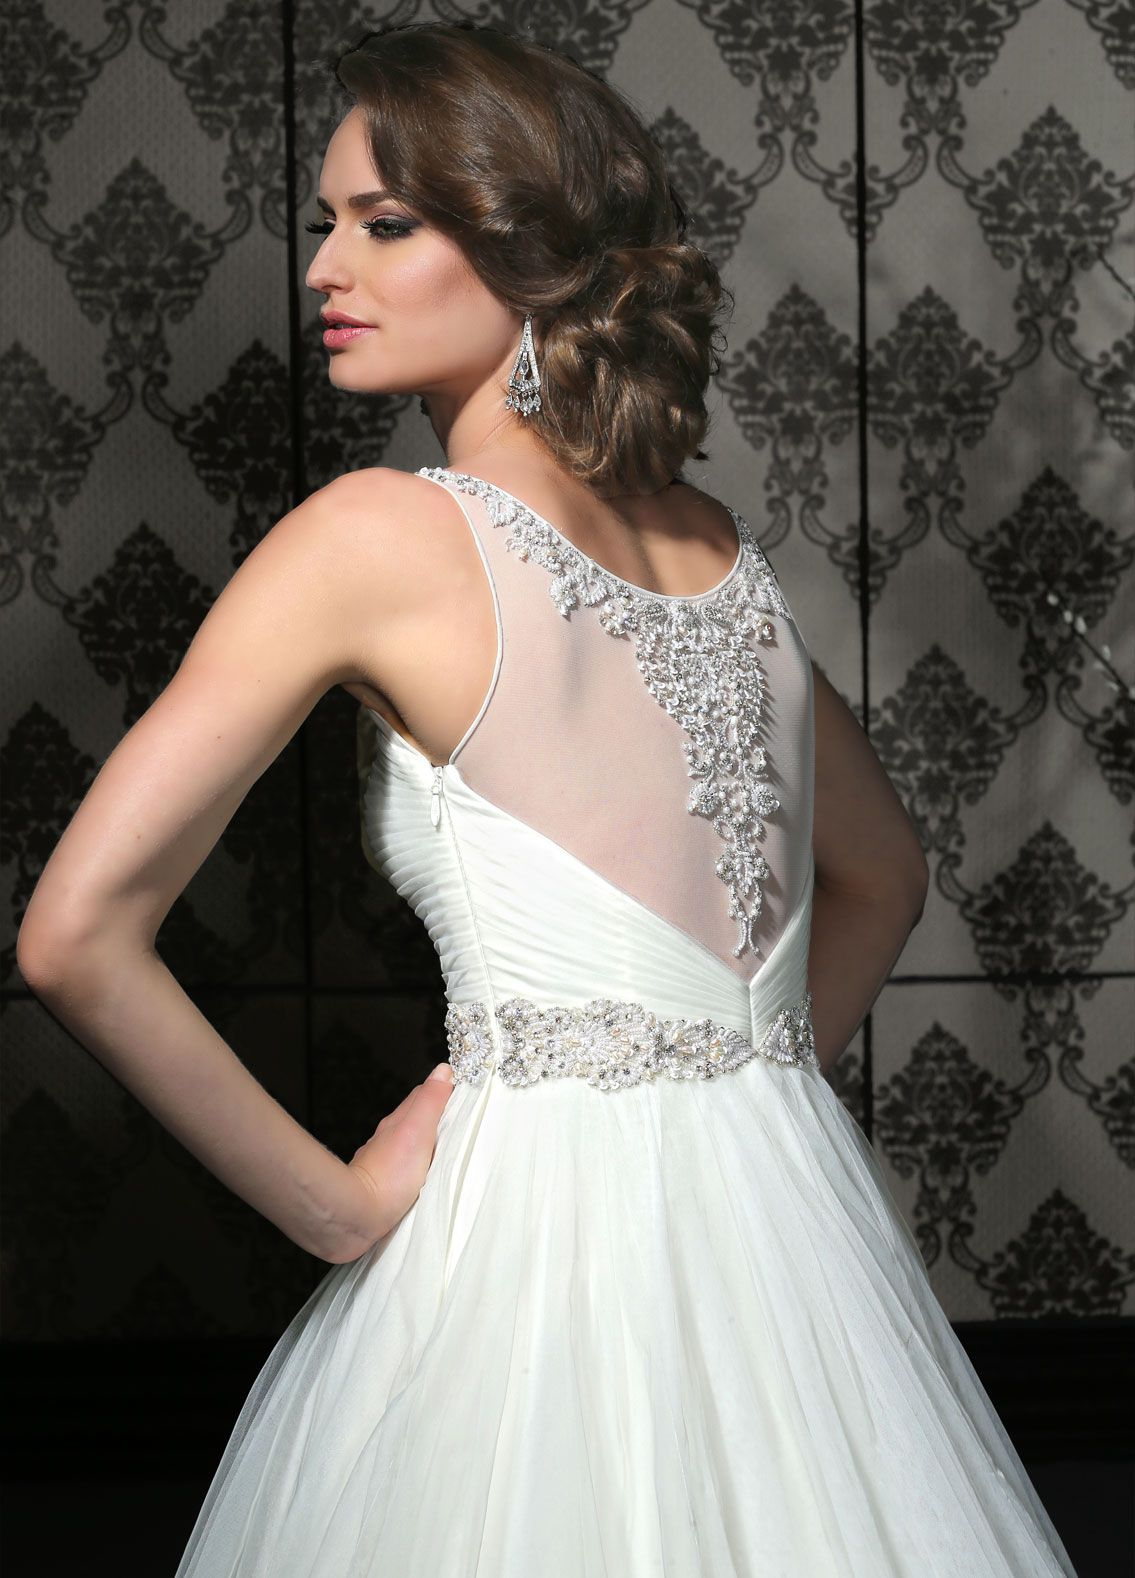 Impression bridal style available in ivory and white tulle